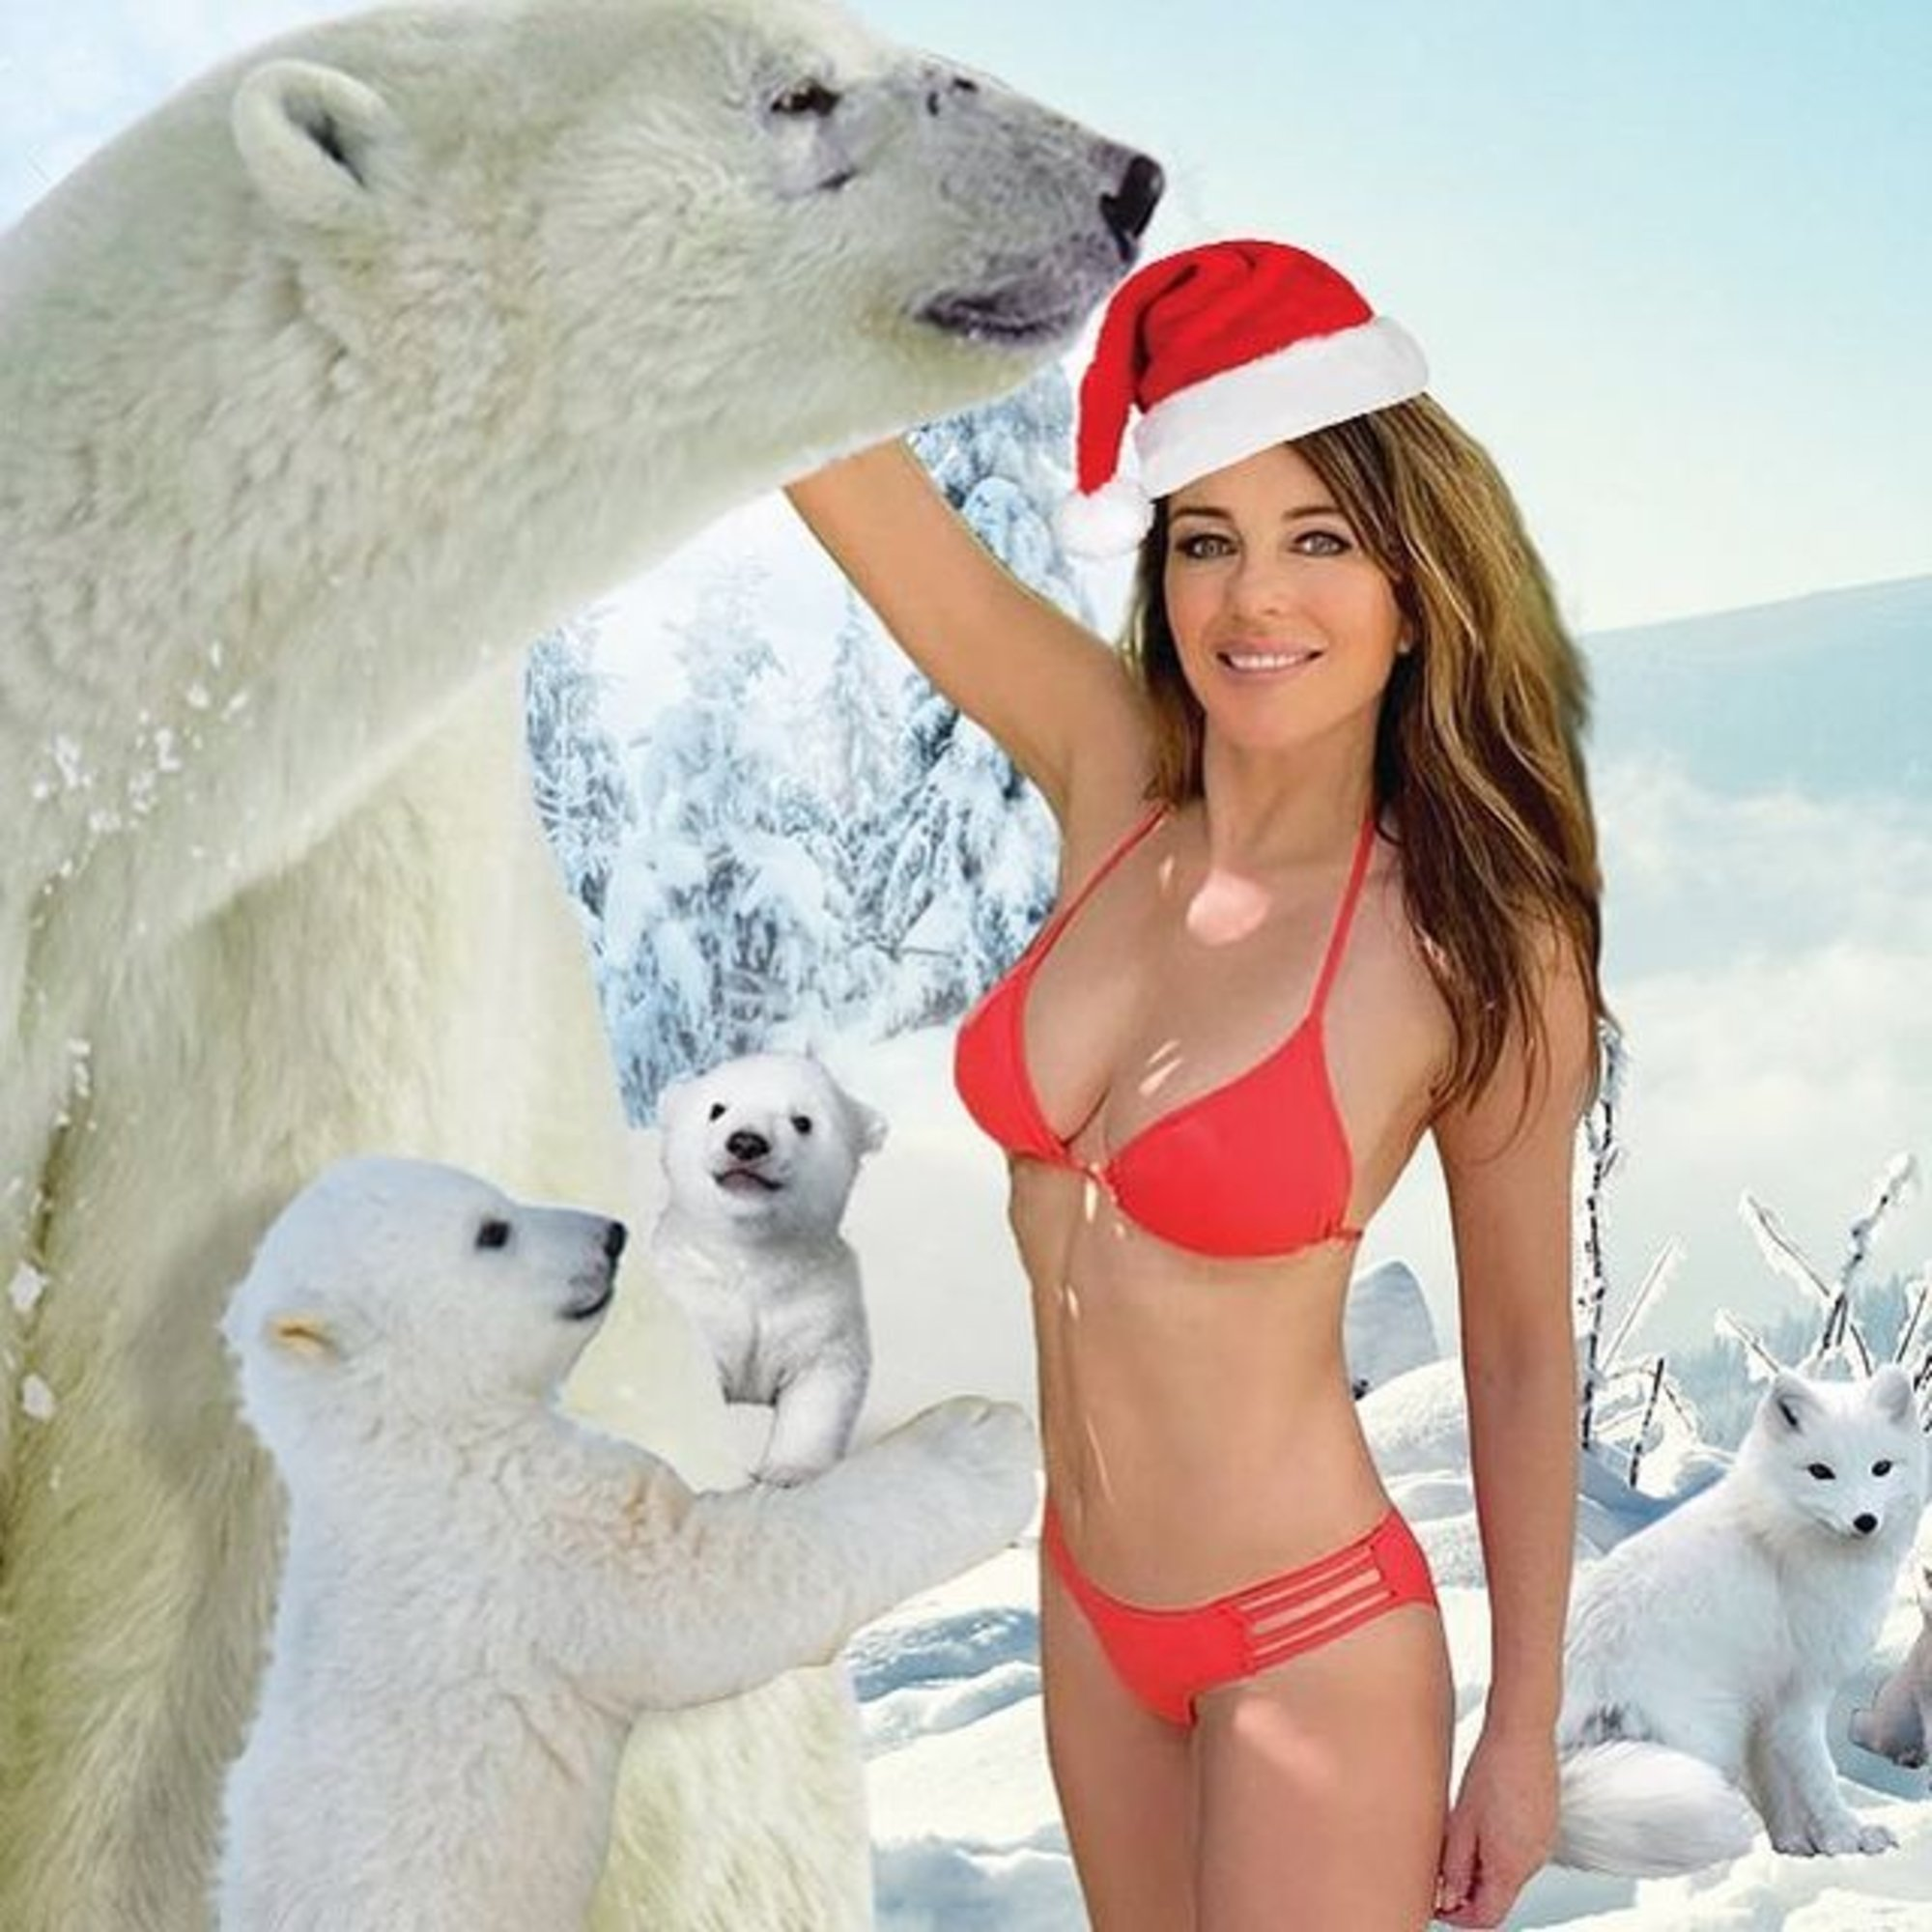 Elizabeth Hurley Poses In A Red Bikini And Puts Her